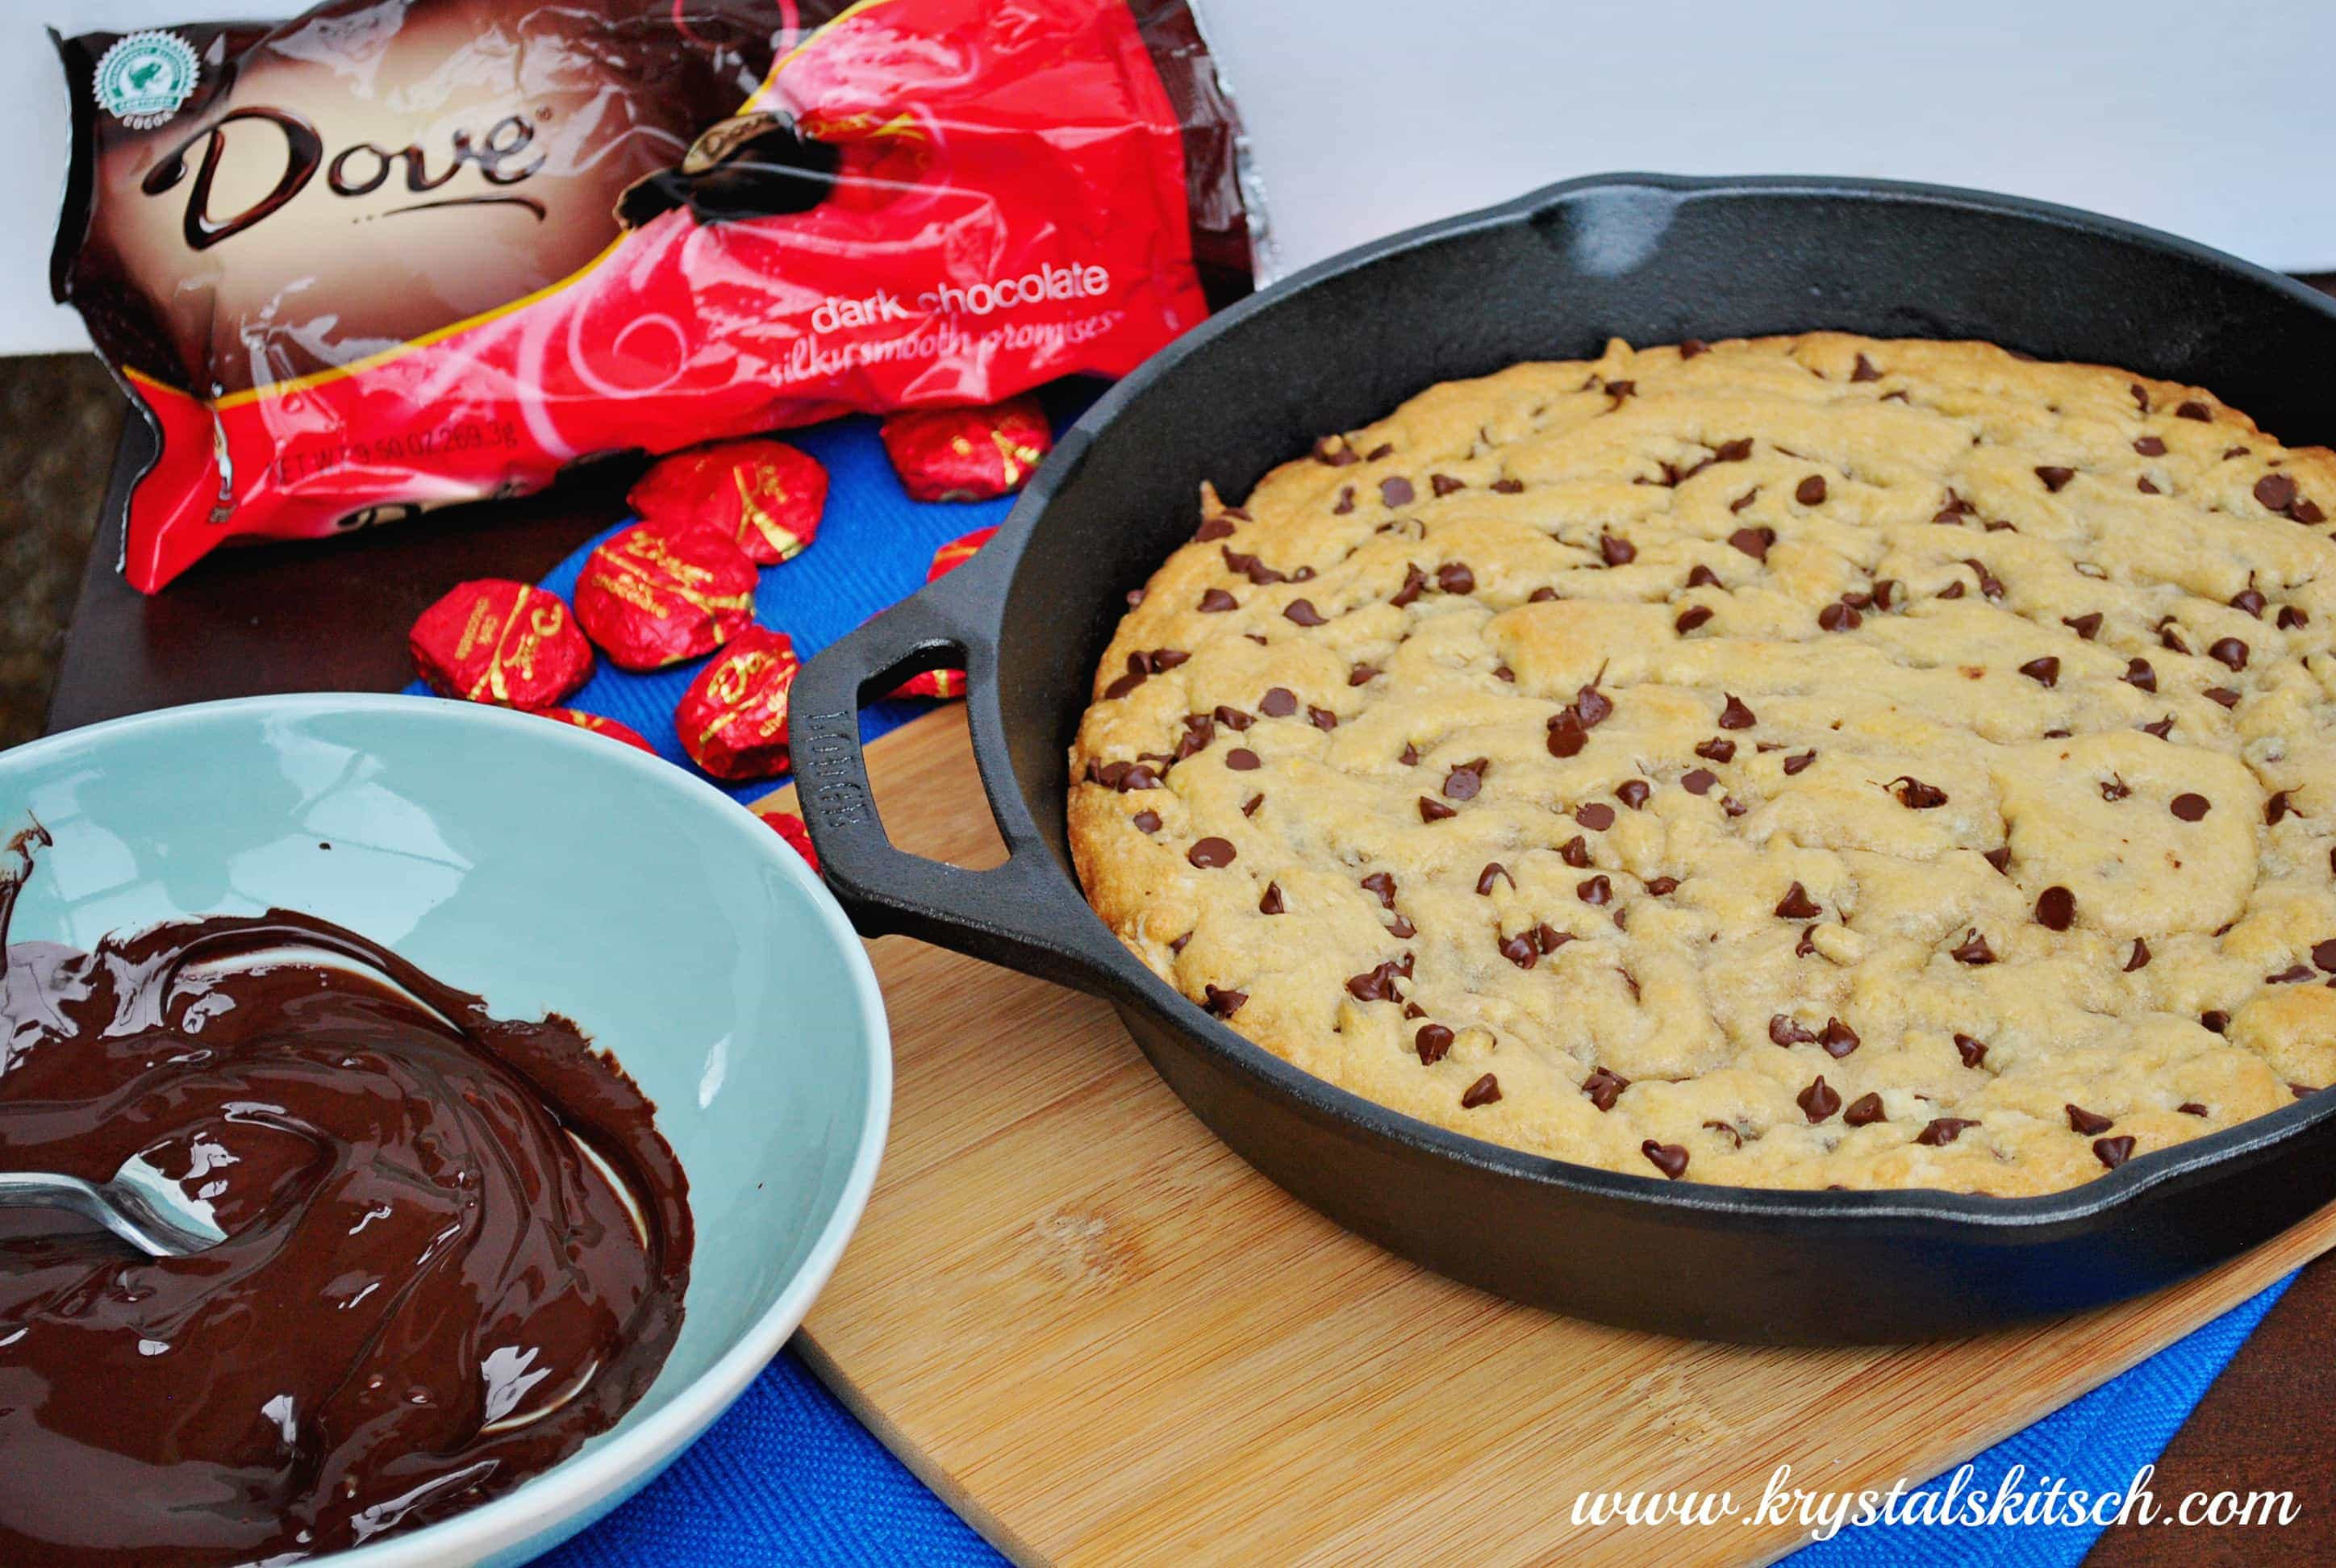 Dove Chocolate Chip Skillet Cookie